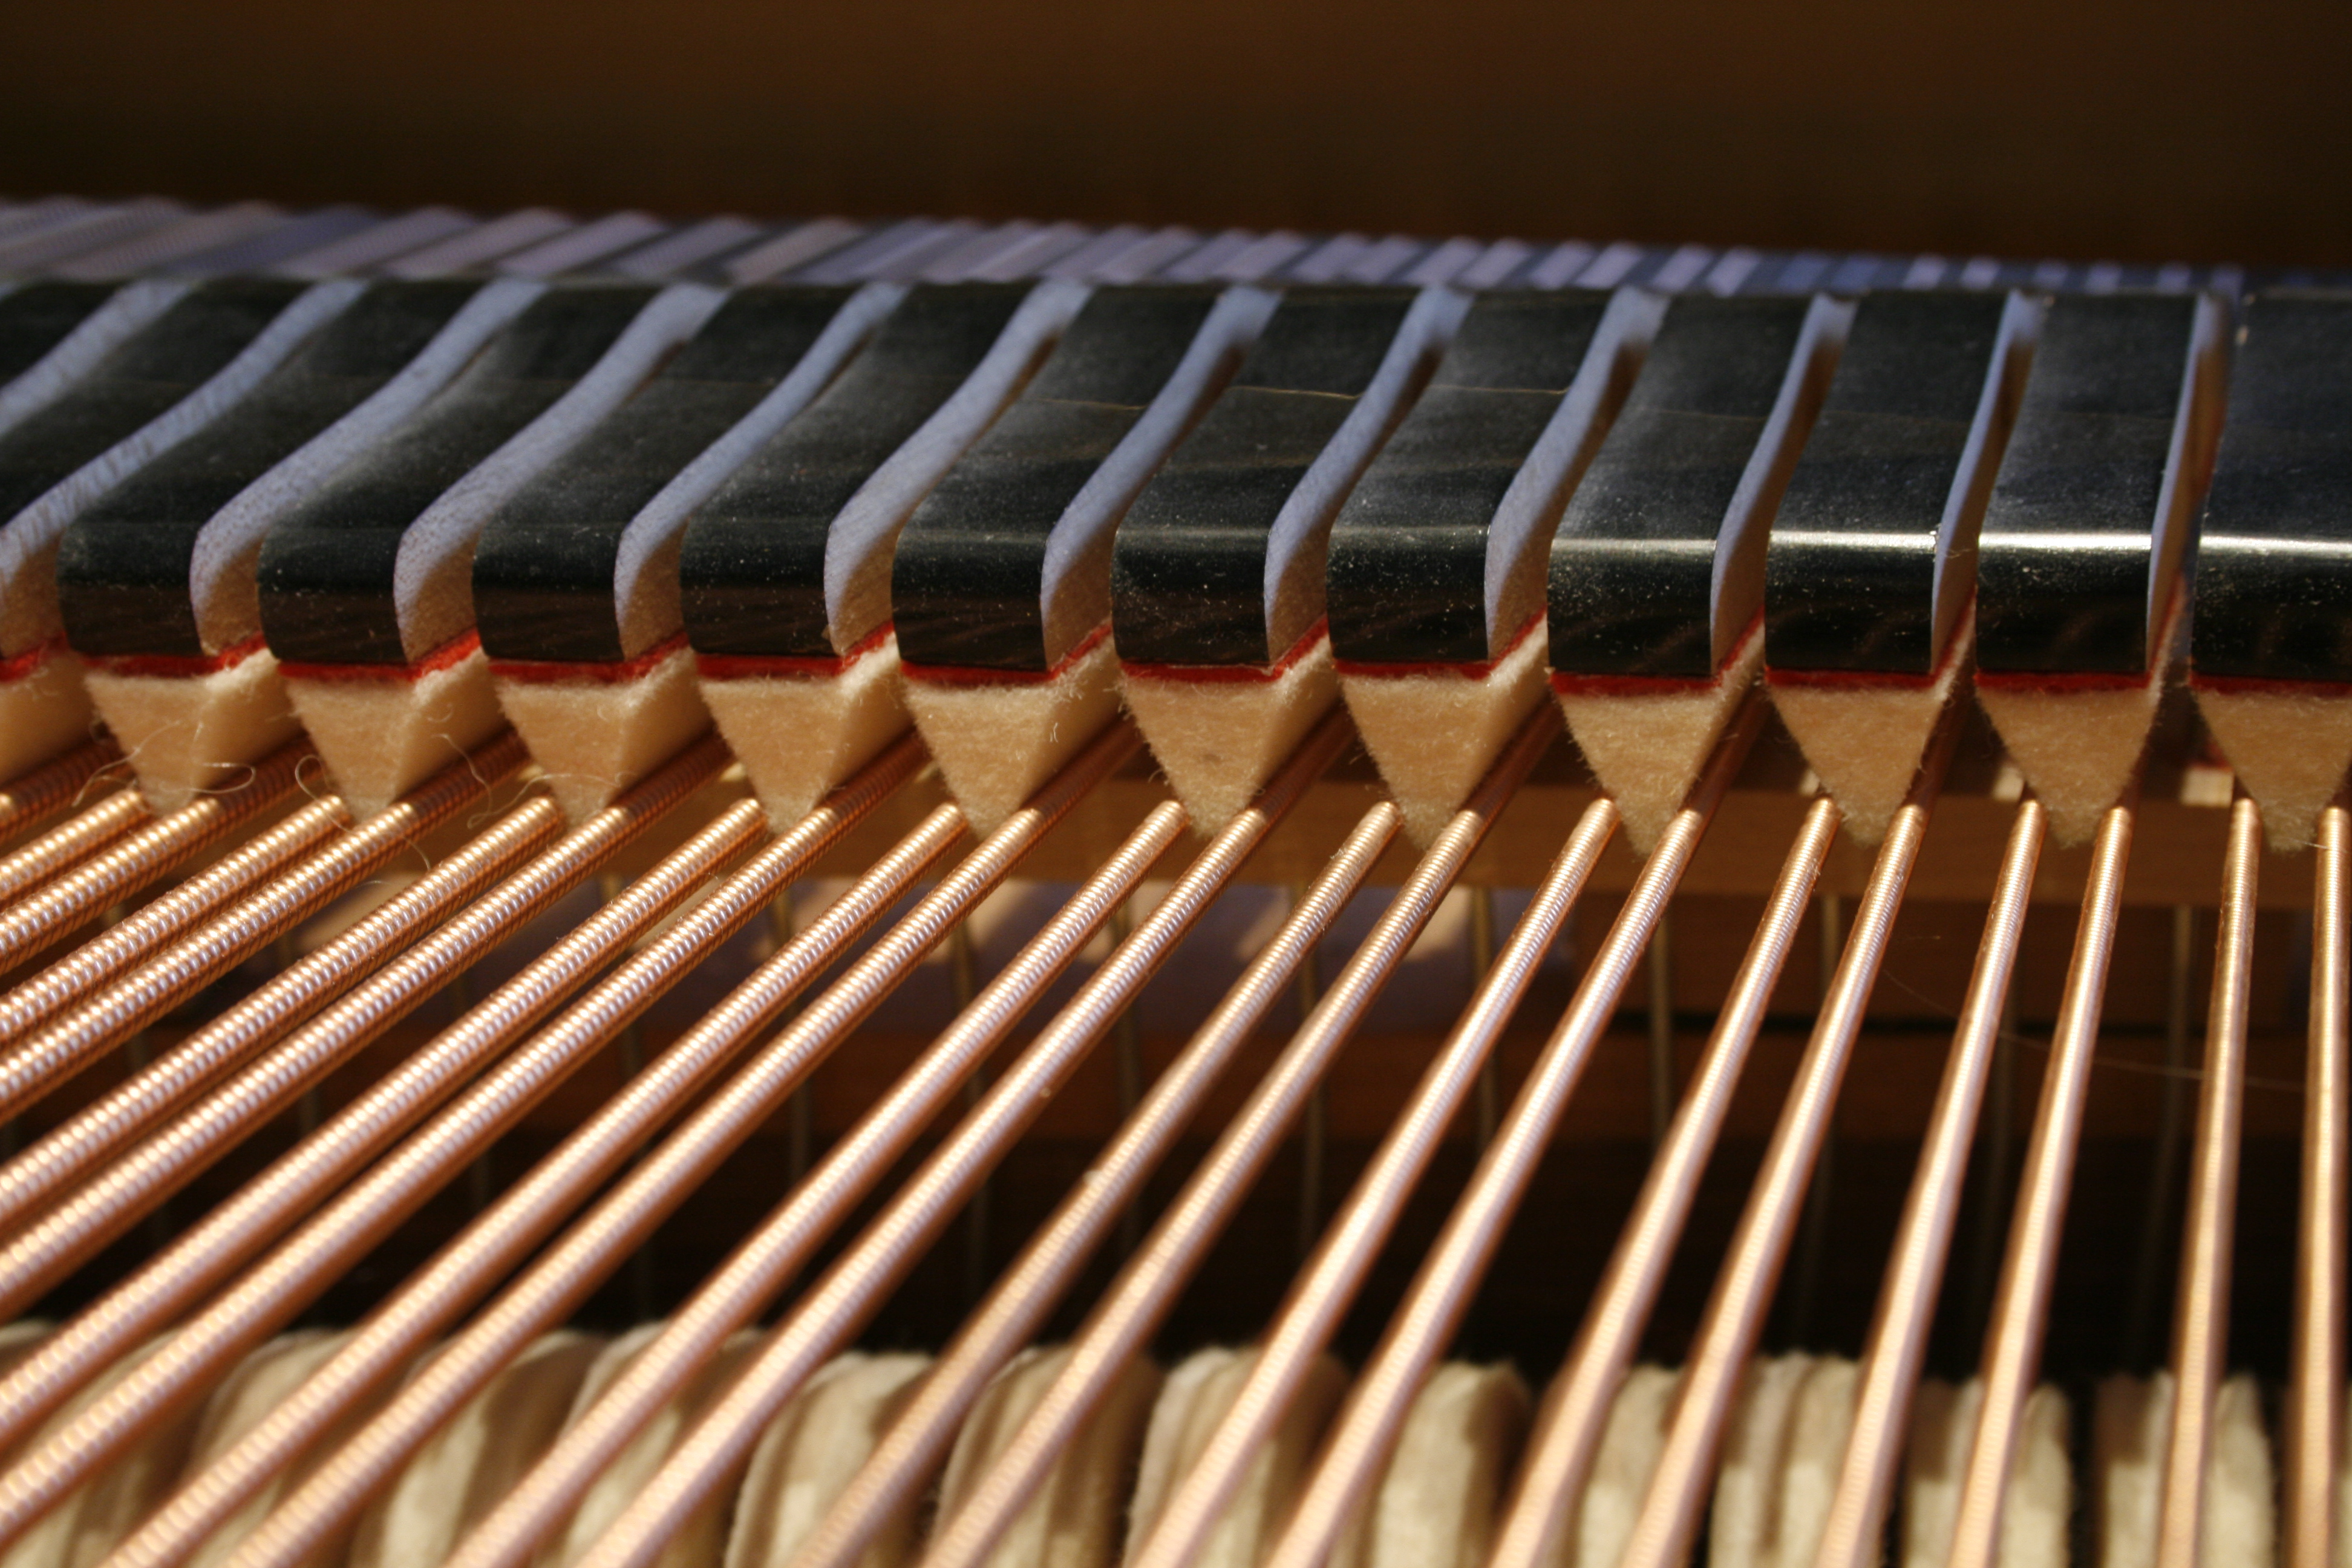 Piano voicing hammers